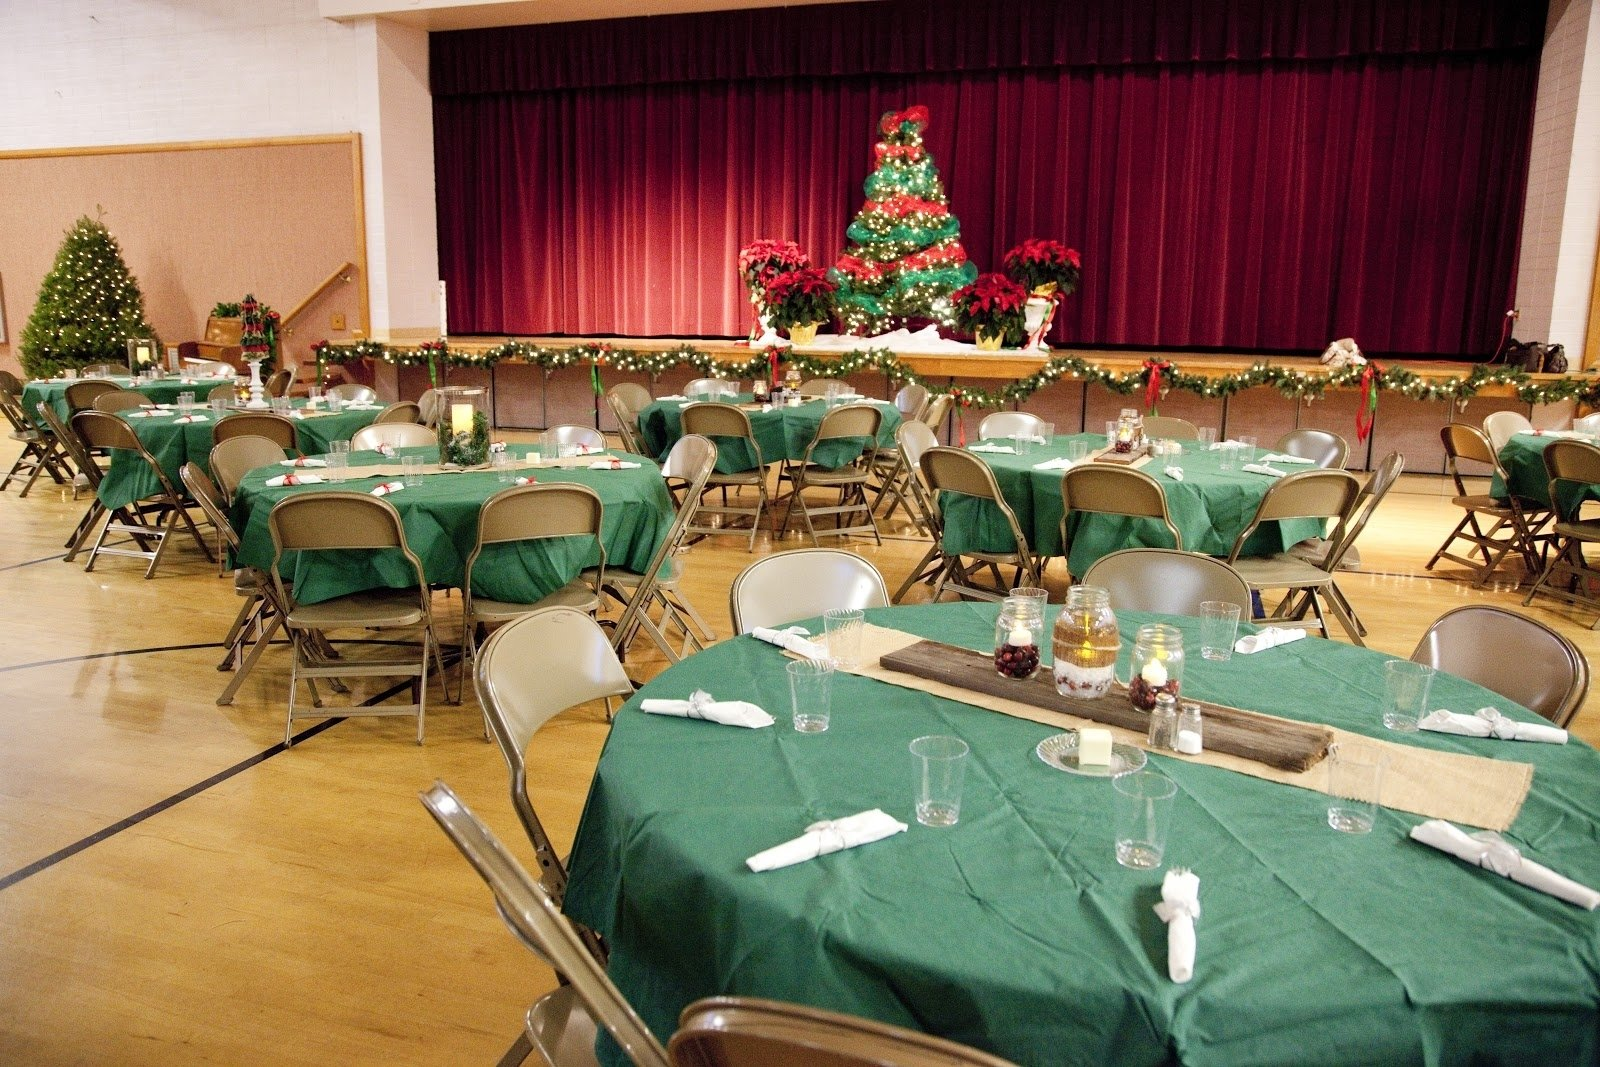 10 Fashionable Lds Ward Christmas Party Ideas the house of nash ward christmas party 2020